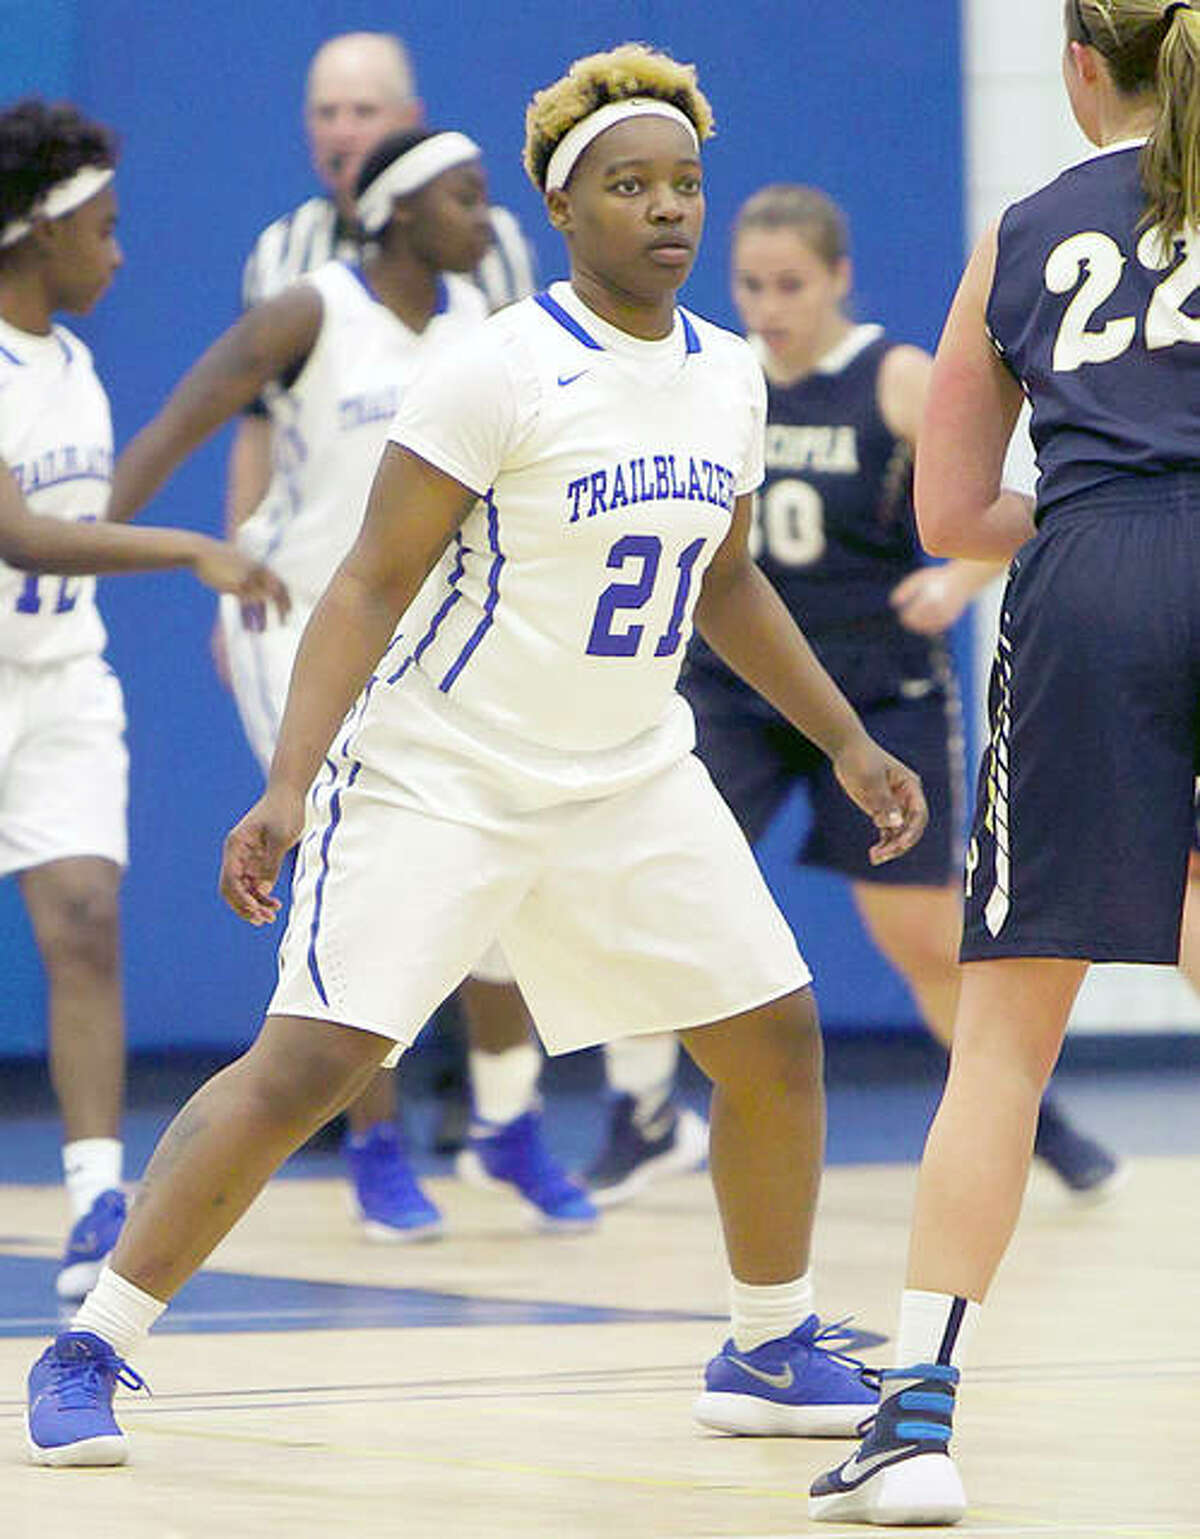 Lewis and Clark's Juantia Walton (21) and her teammates won a pair of games at the recent Lady Saluqui Classic in Memphis, downing Three Rivers Community College and Southwest Tennessee. LCCC (9-3) will play at Southwestern Illinois College Wednesday in Belleville.